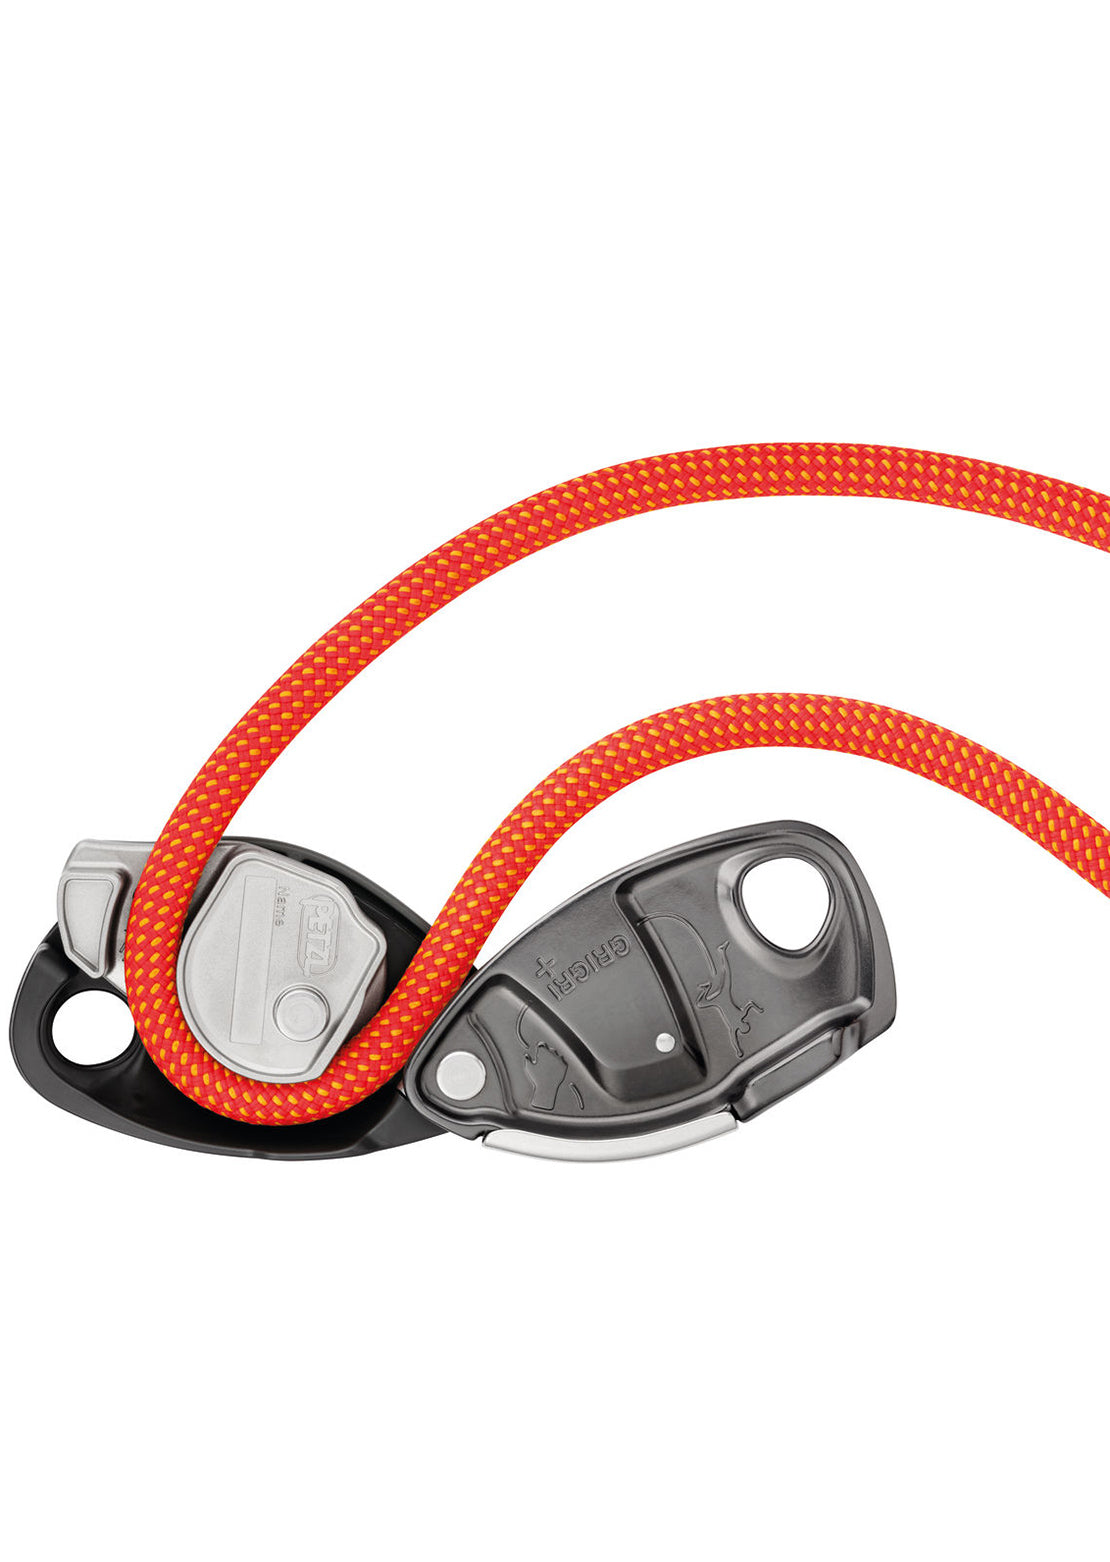 Petzl Grigri+ Belay Device Gray